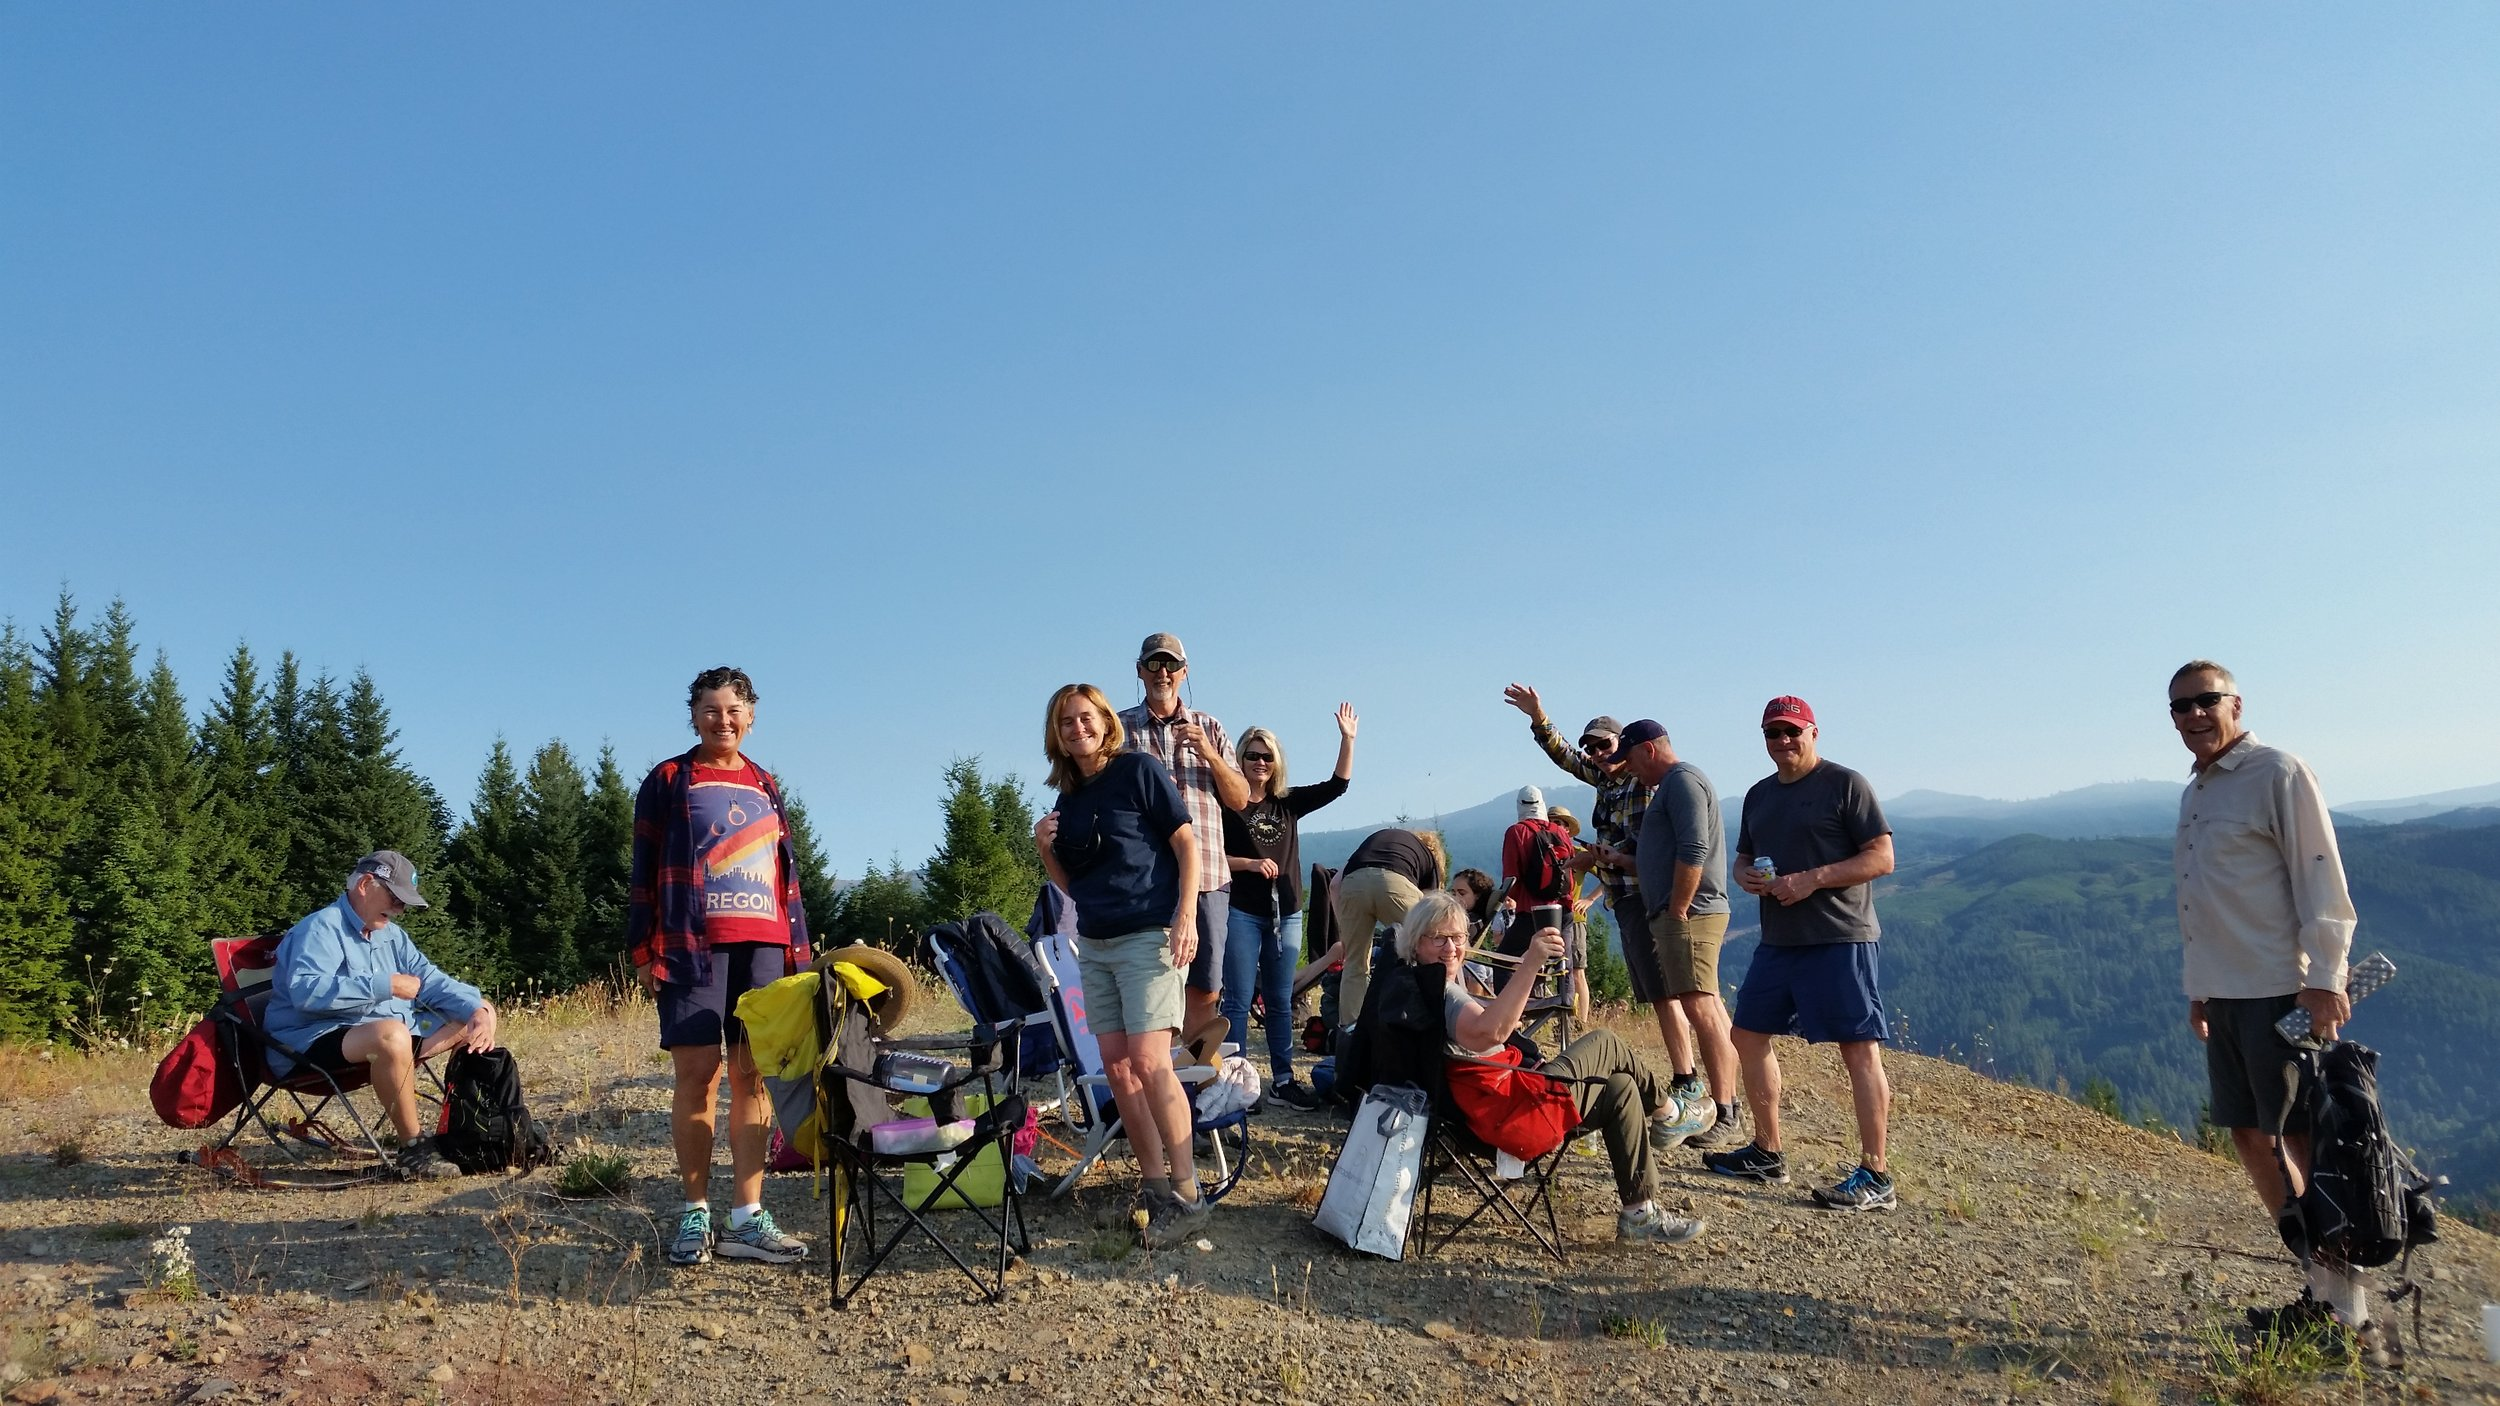 Our gang at viewing knoll outside Mill City